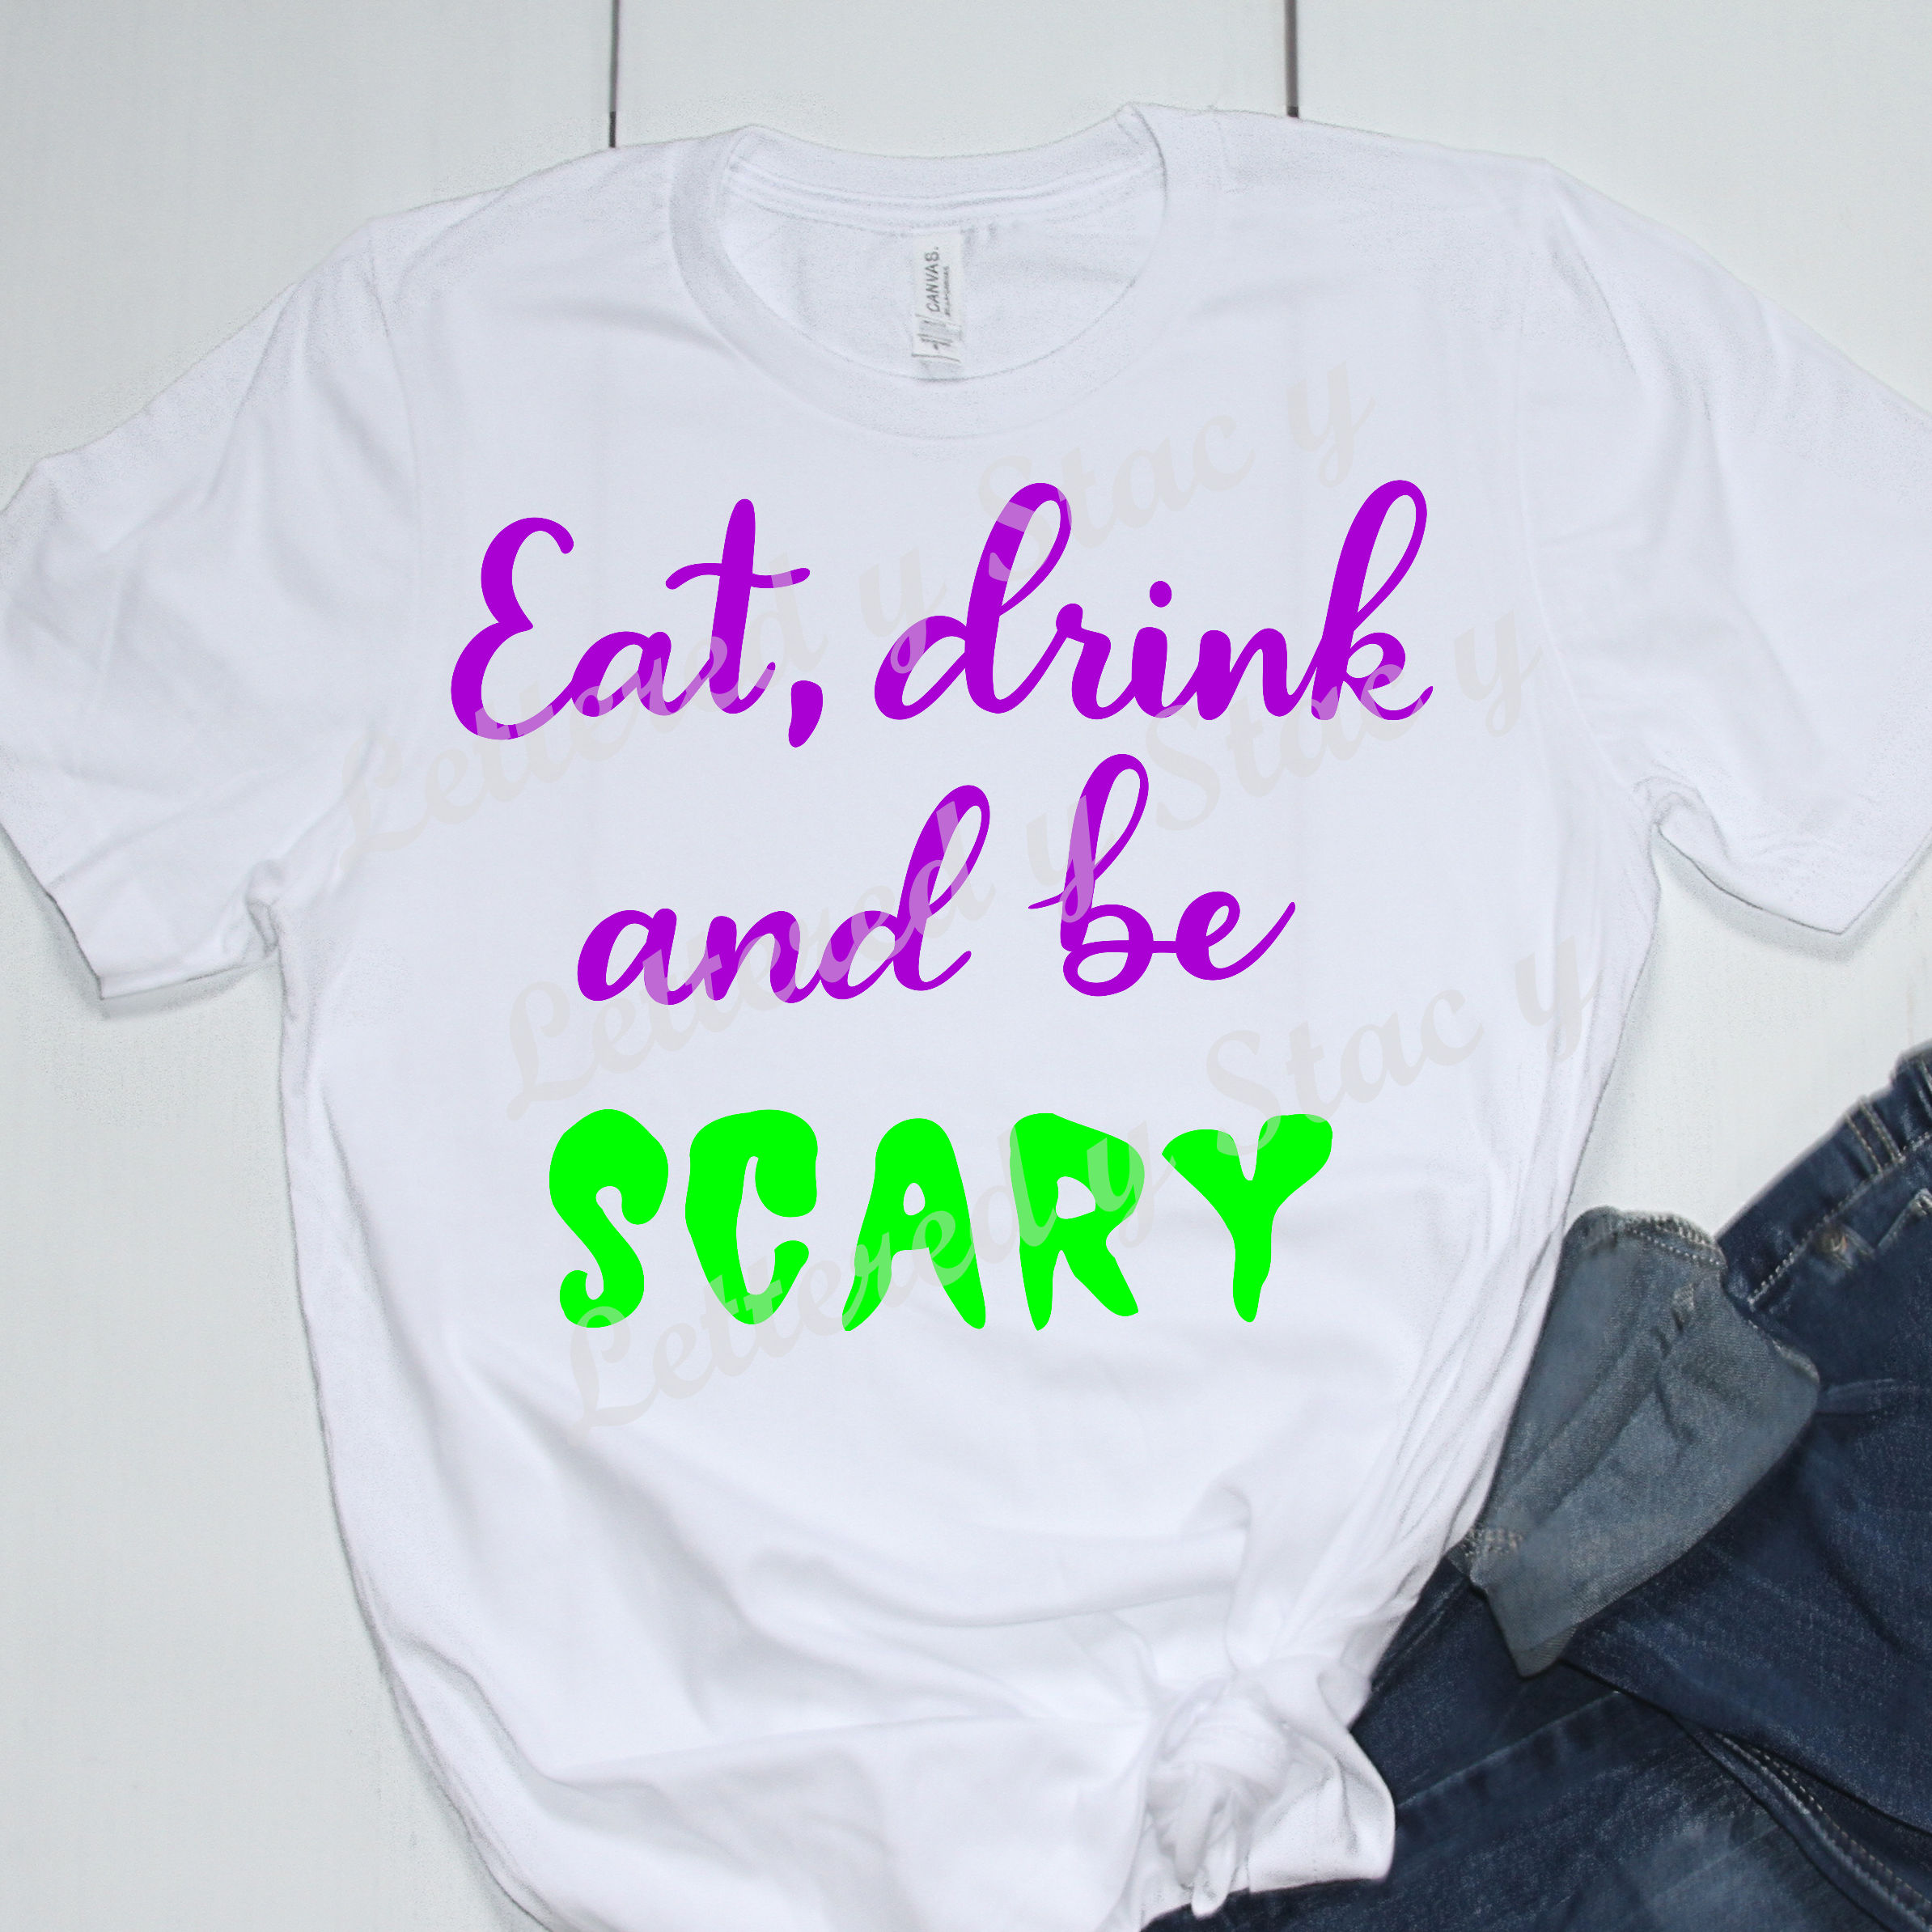 Halloween SVG / Eat, drink, and be scary SVG example image 2